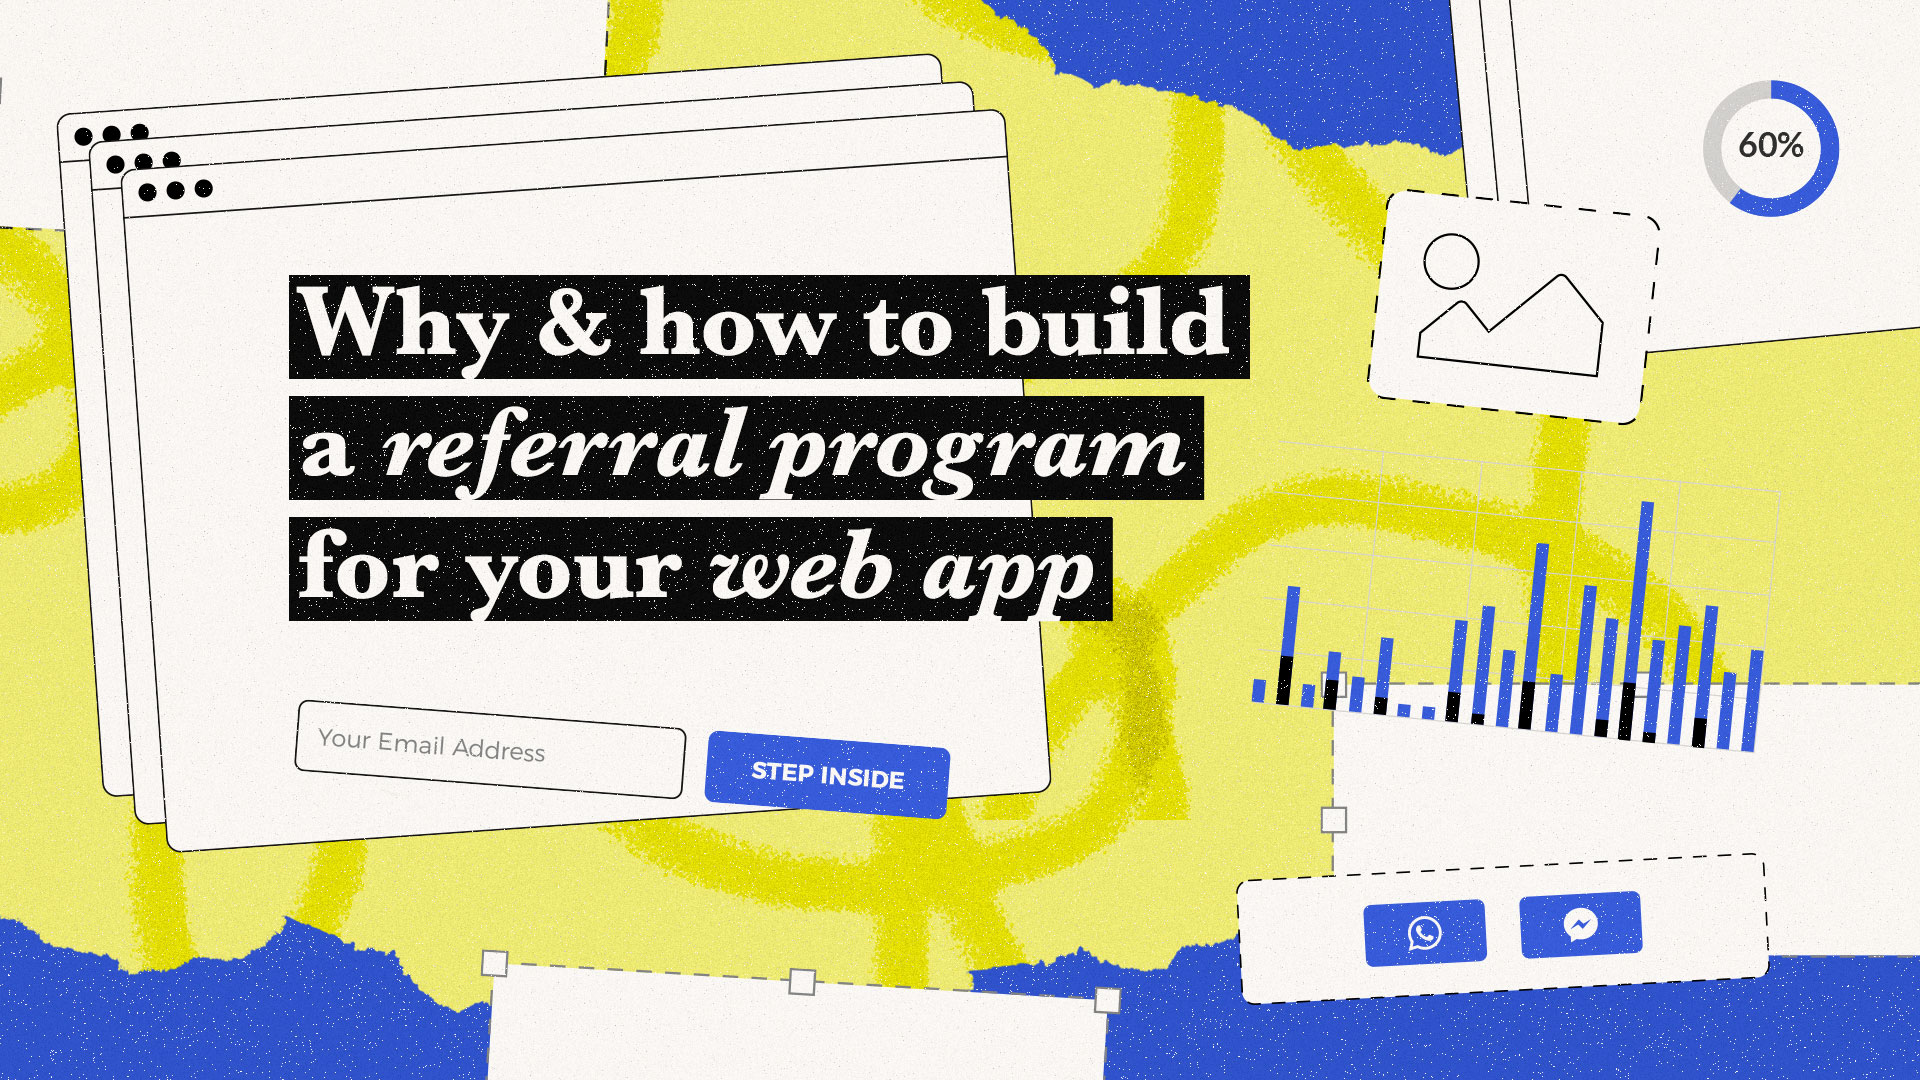 Why & how to build a referral program for your web app.